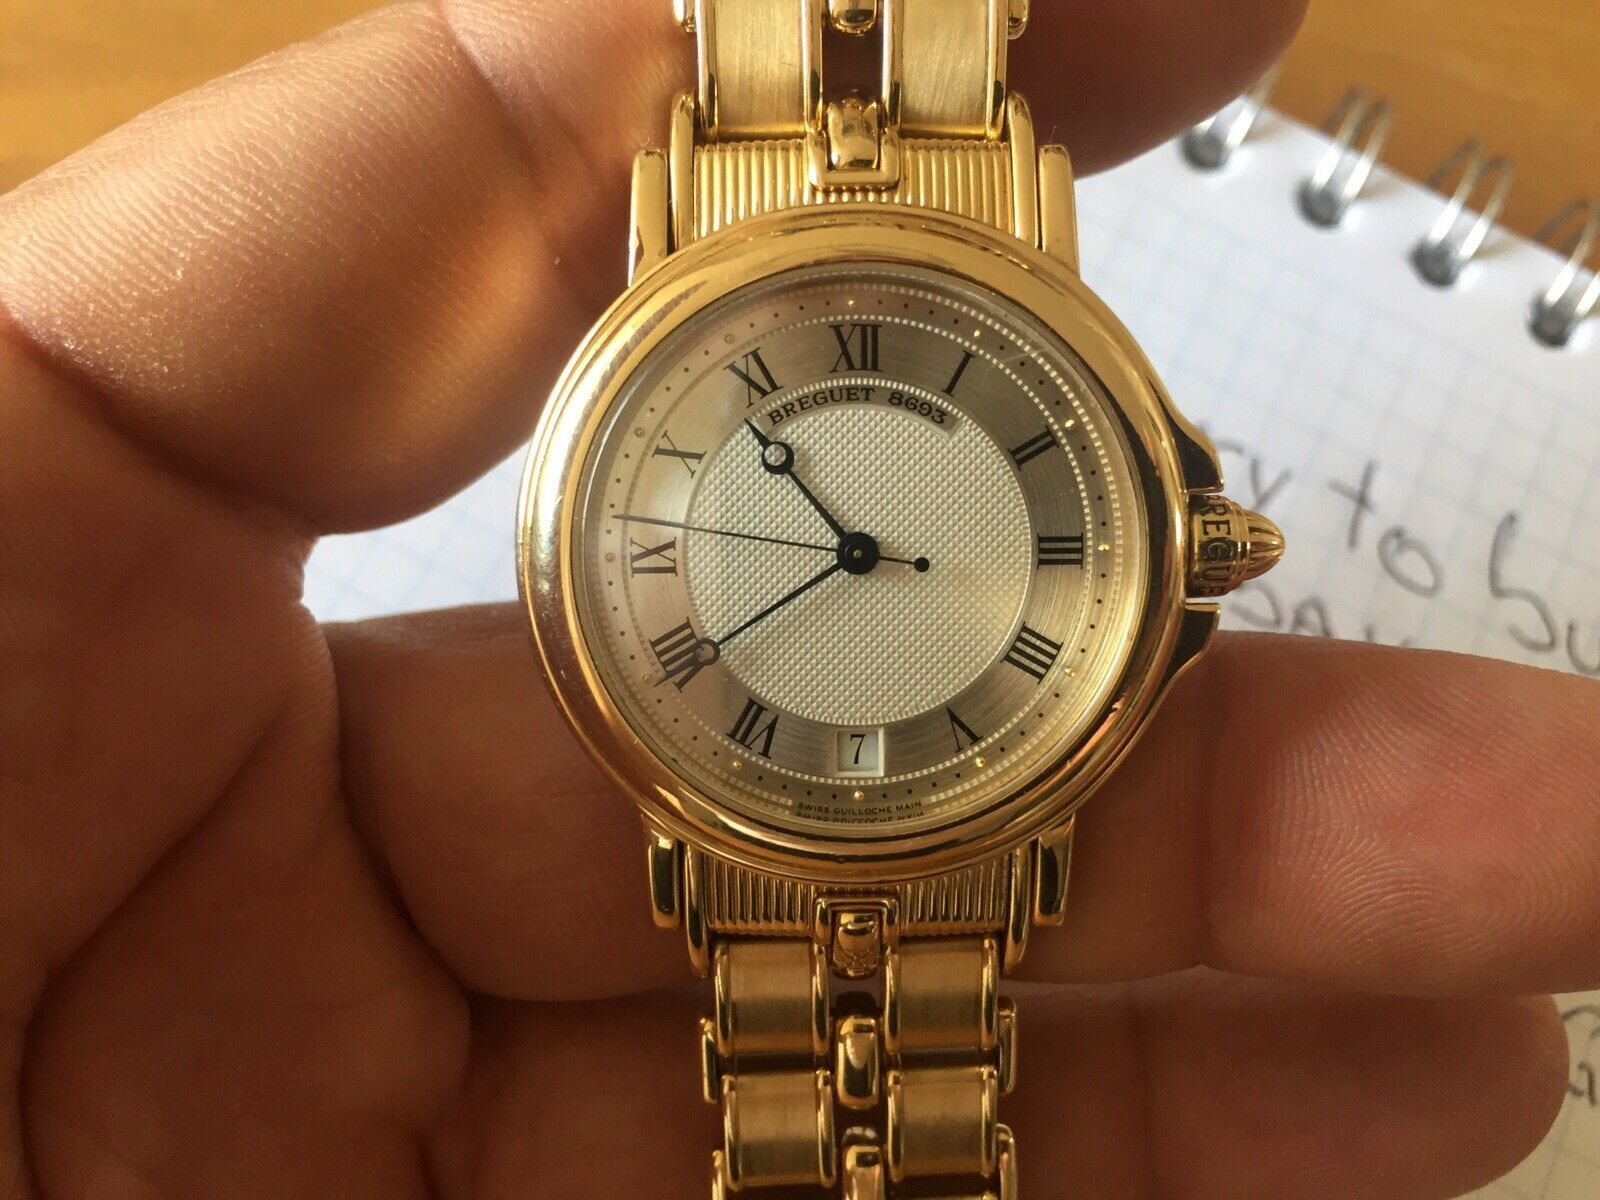 Breguet Marine Automatique in 18K. YG Complete 33mm 149 grams with Authentic Box - watch picture 1